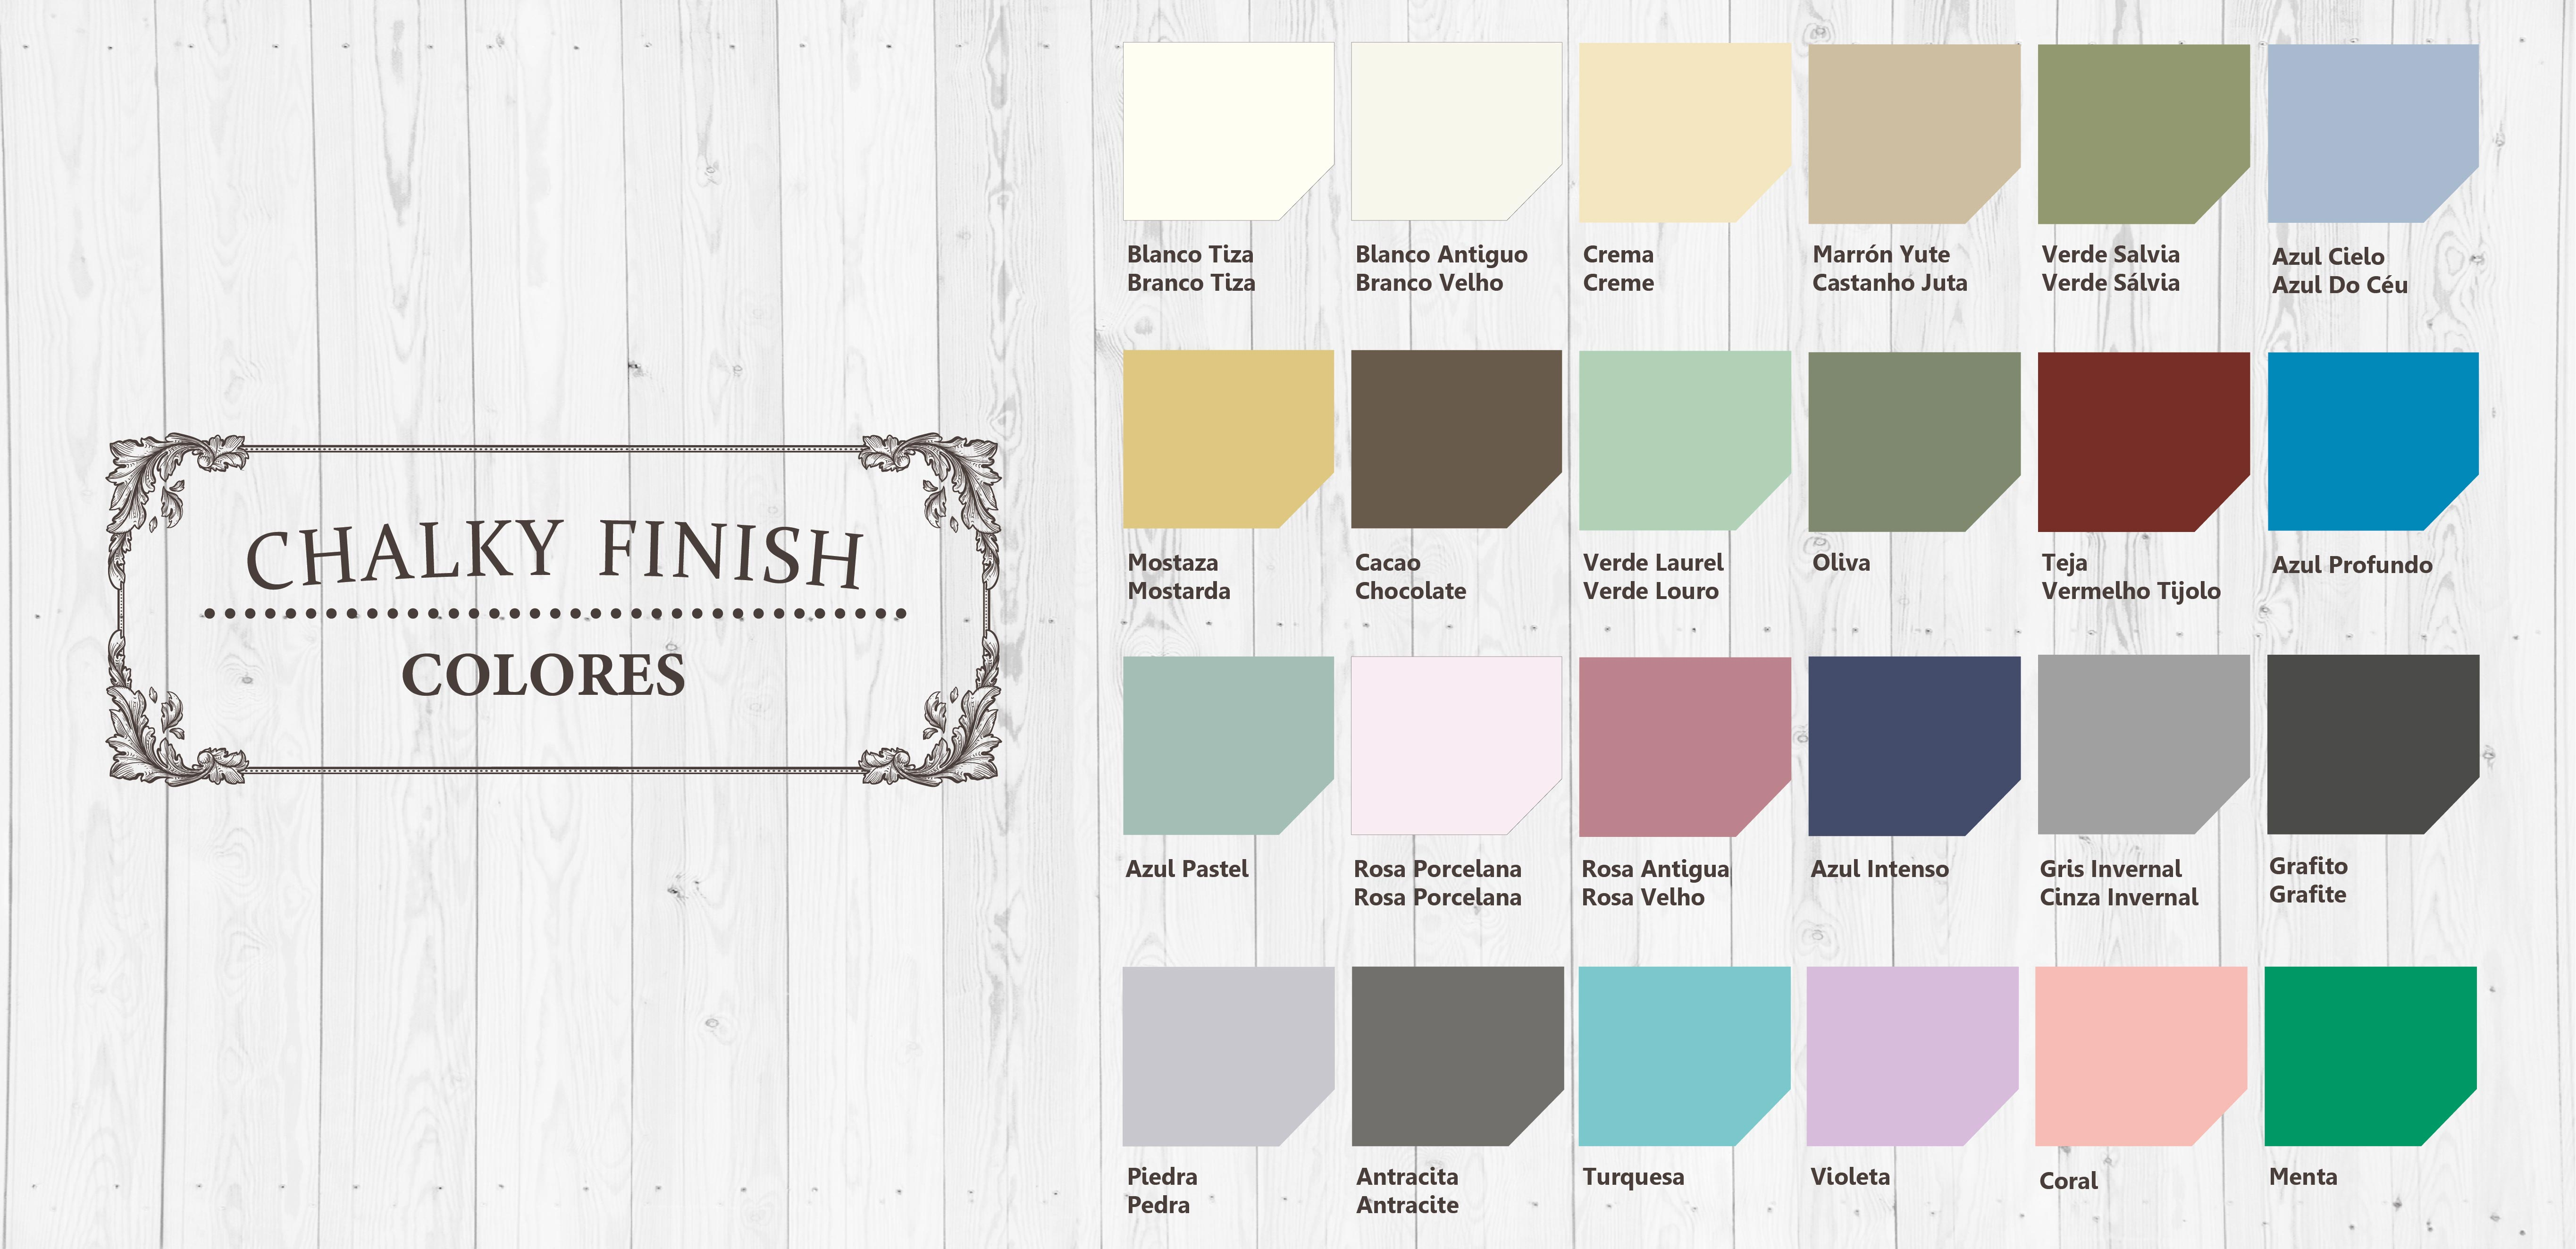 Chalky Finish colores